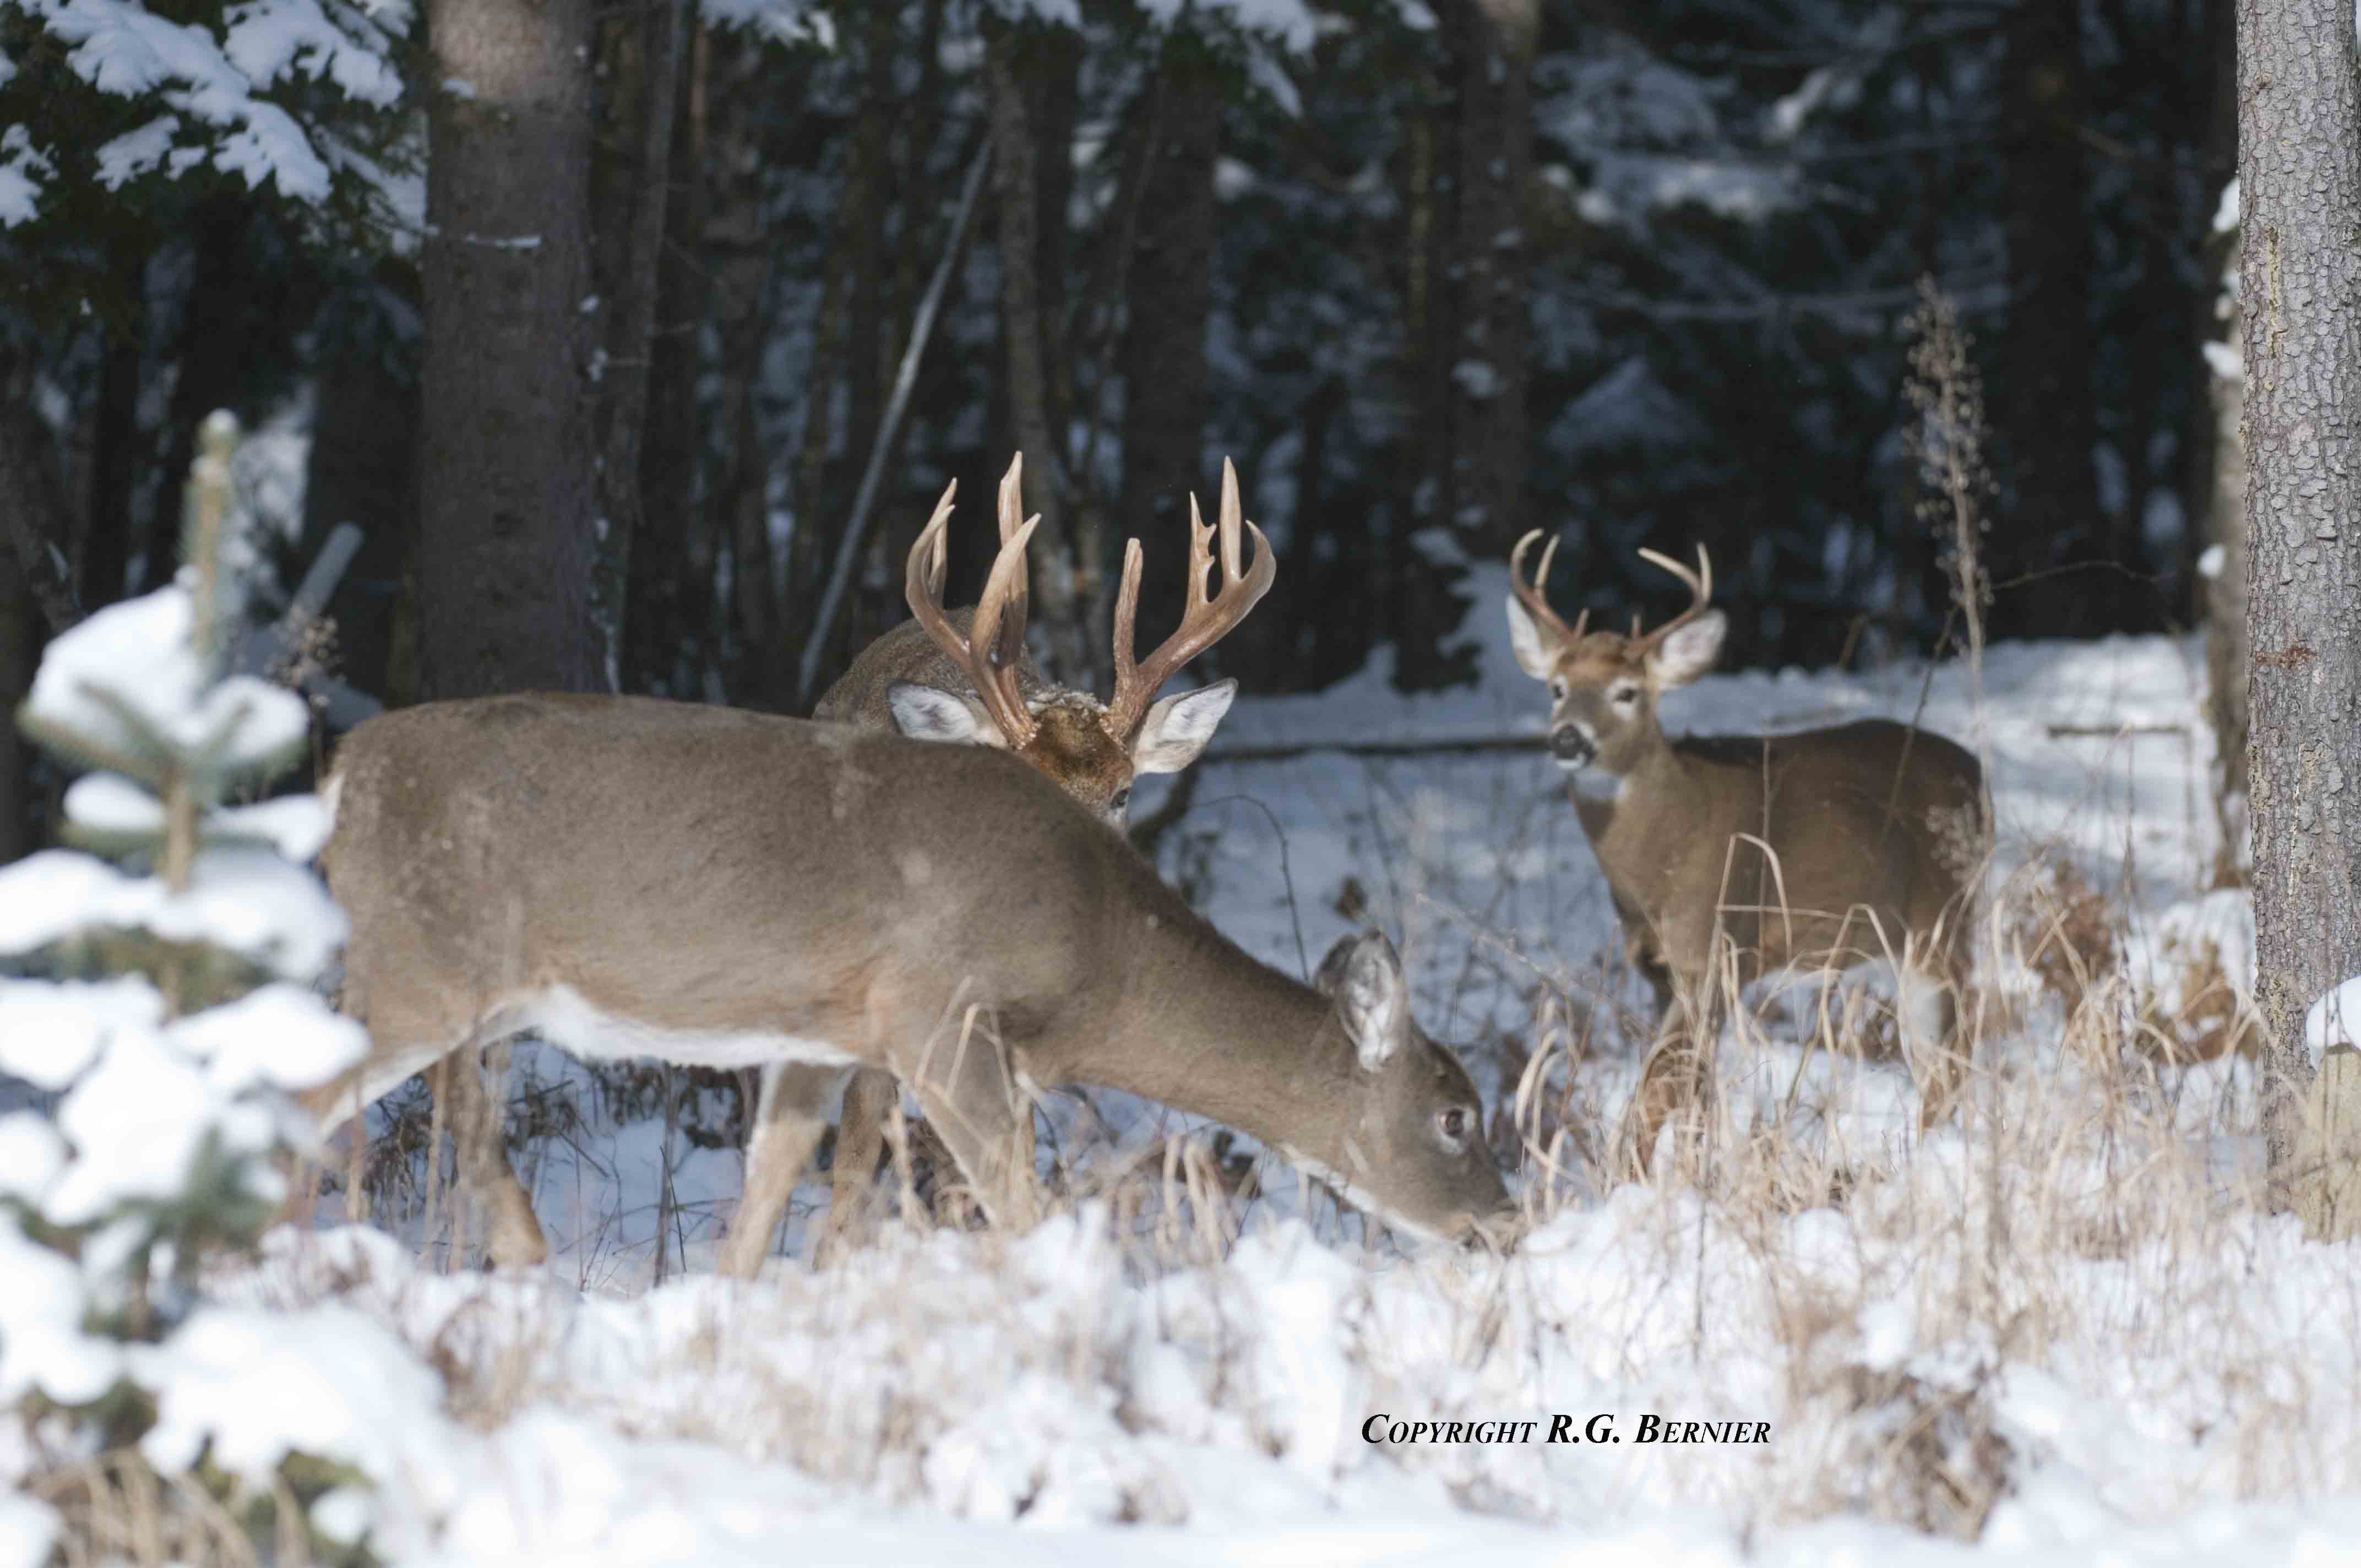 deer chat Ox ranch is the most exciting whitetail deer hunting ranch in texas we have over 18k acres of whitetail deer hunting, tank driving & shooting, caving etc.